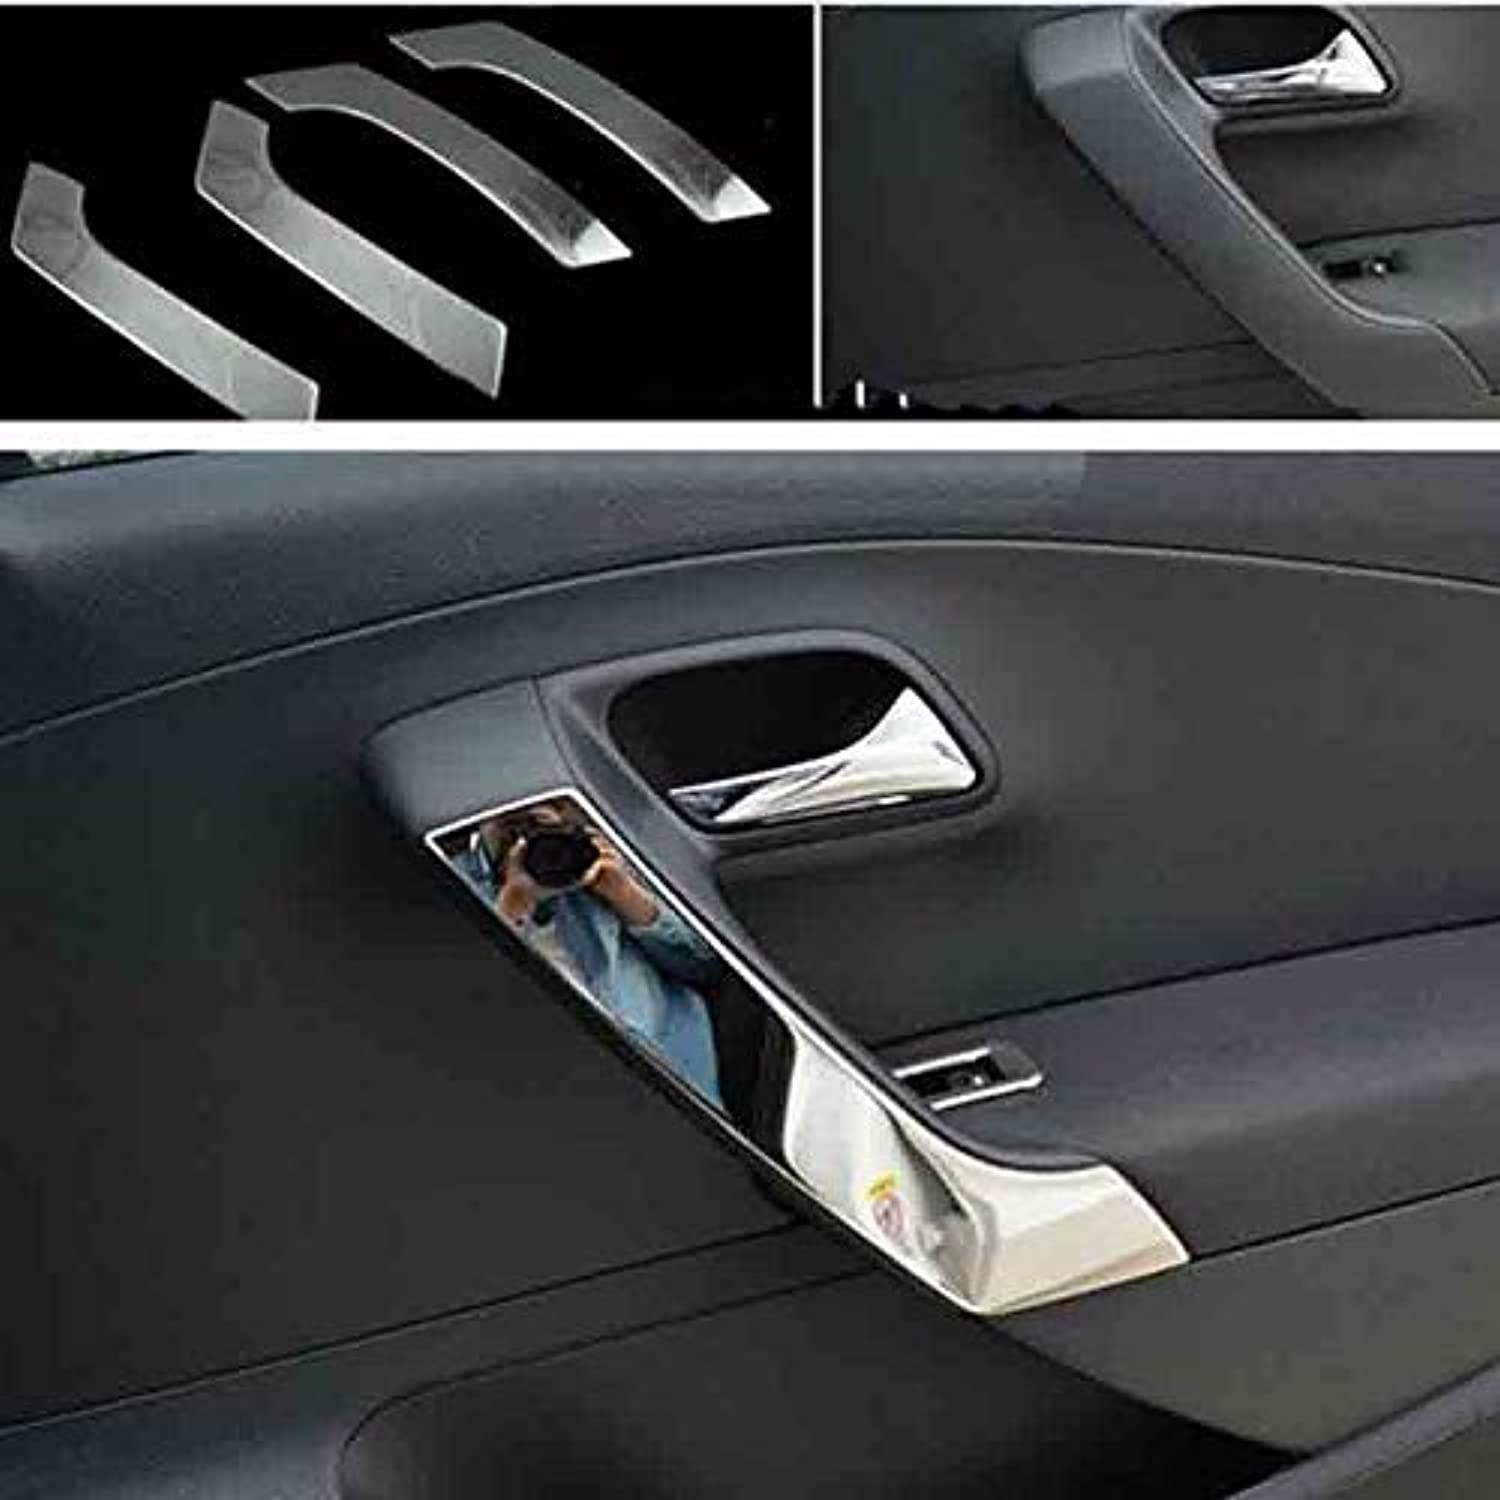 Stainless Steel Interior Door Shake handshandle Car Accessories CarStyling for VW Volkswagen Polo 20112017 6R